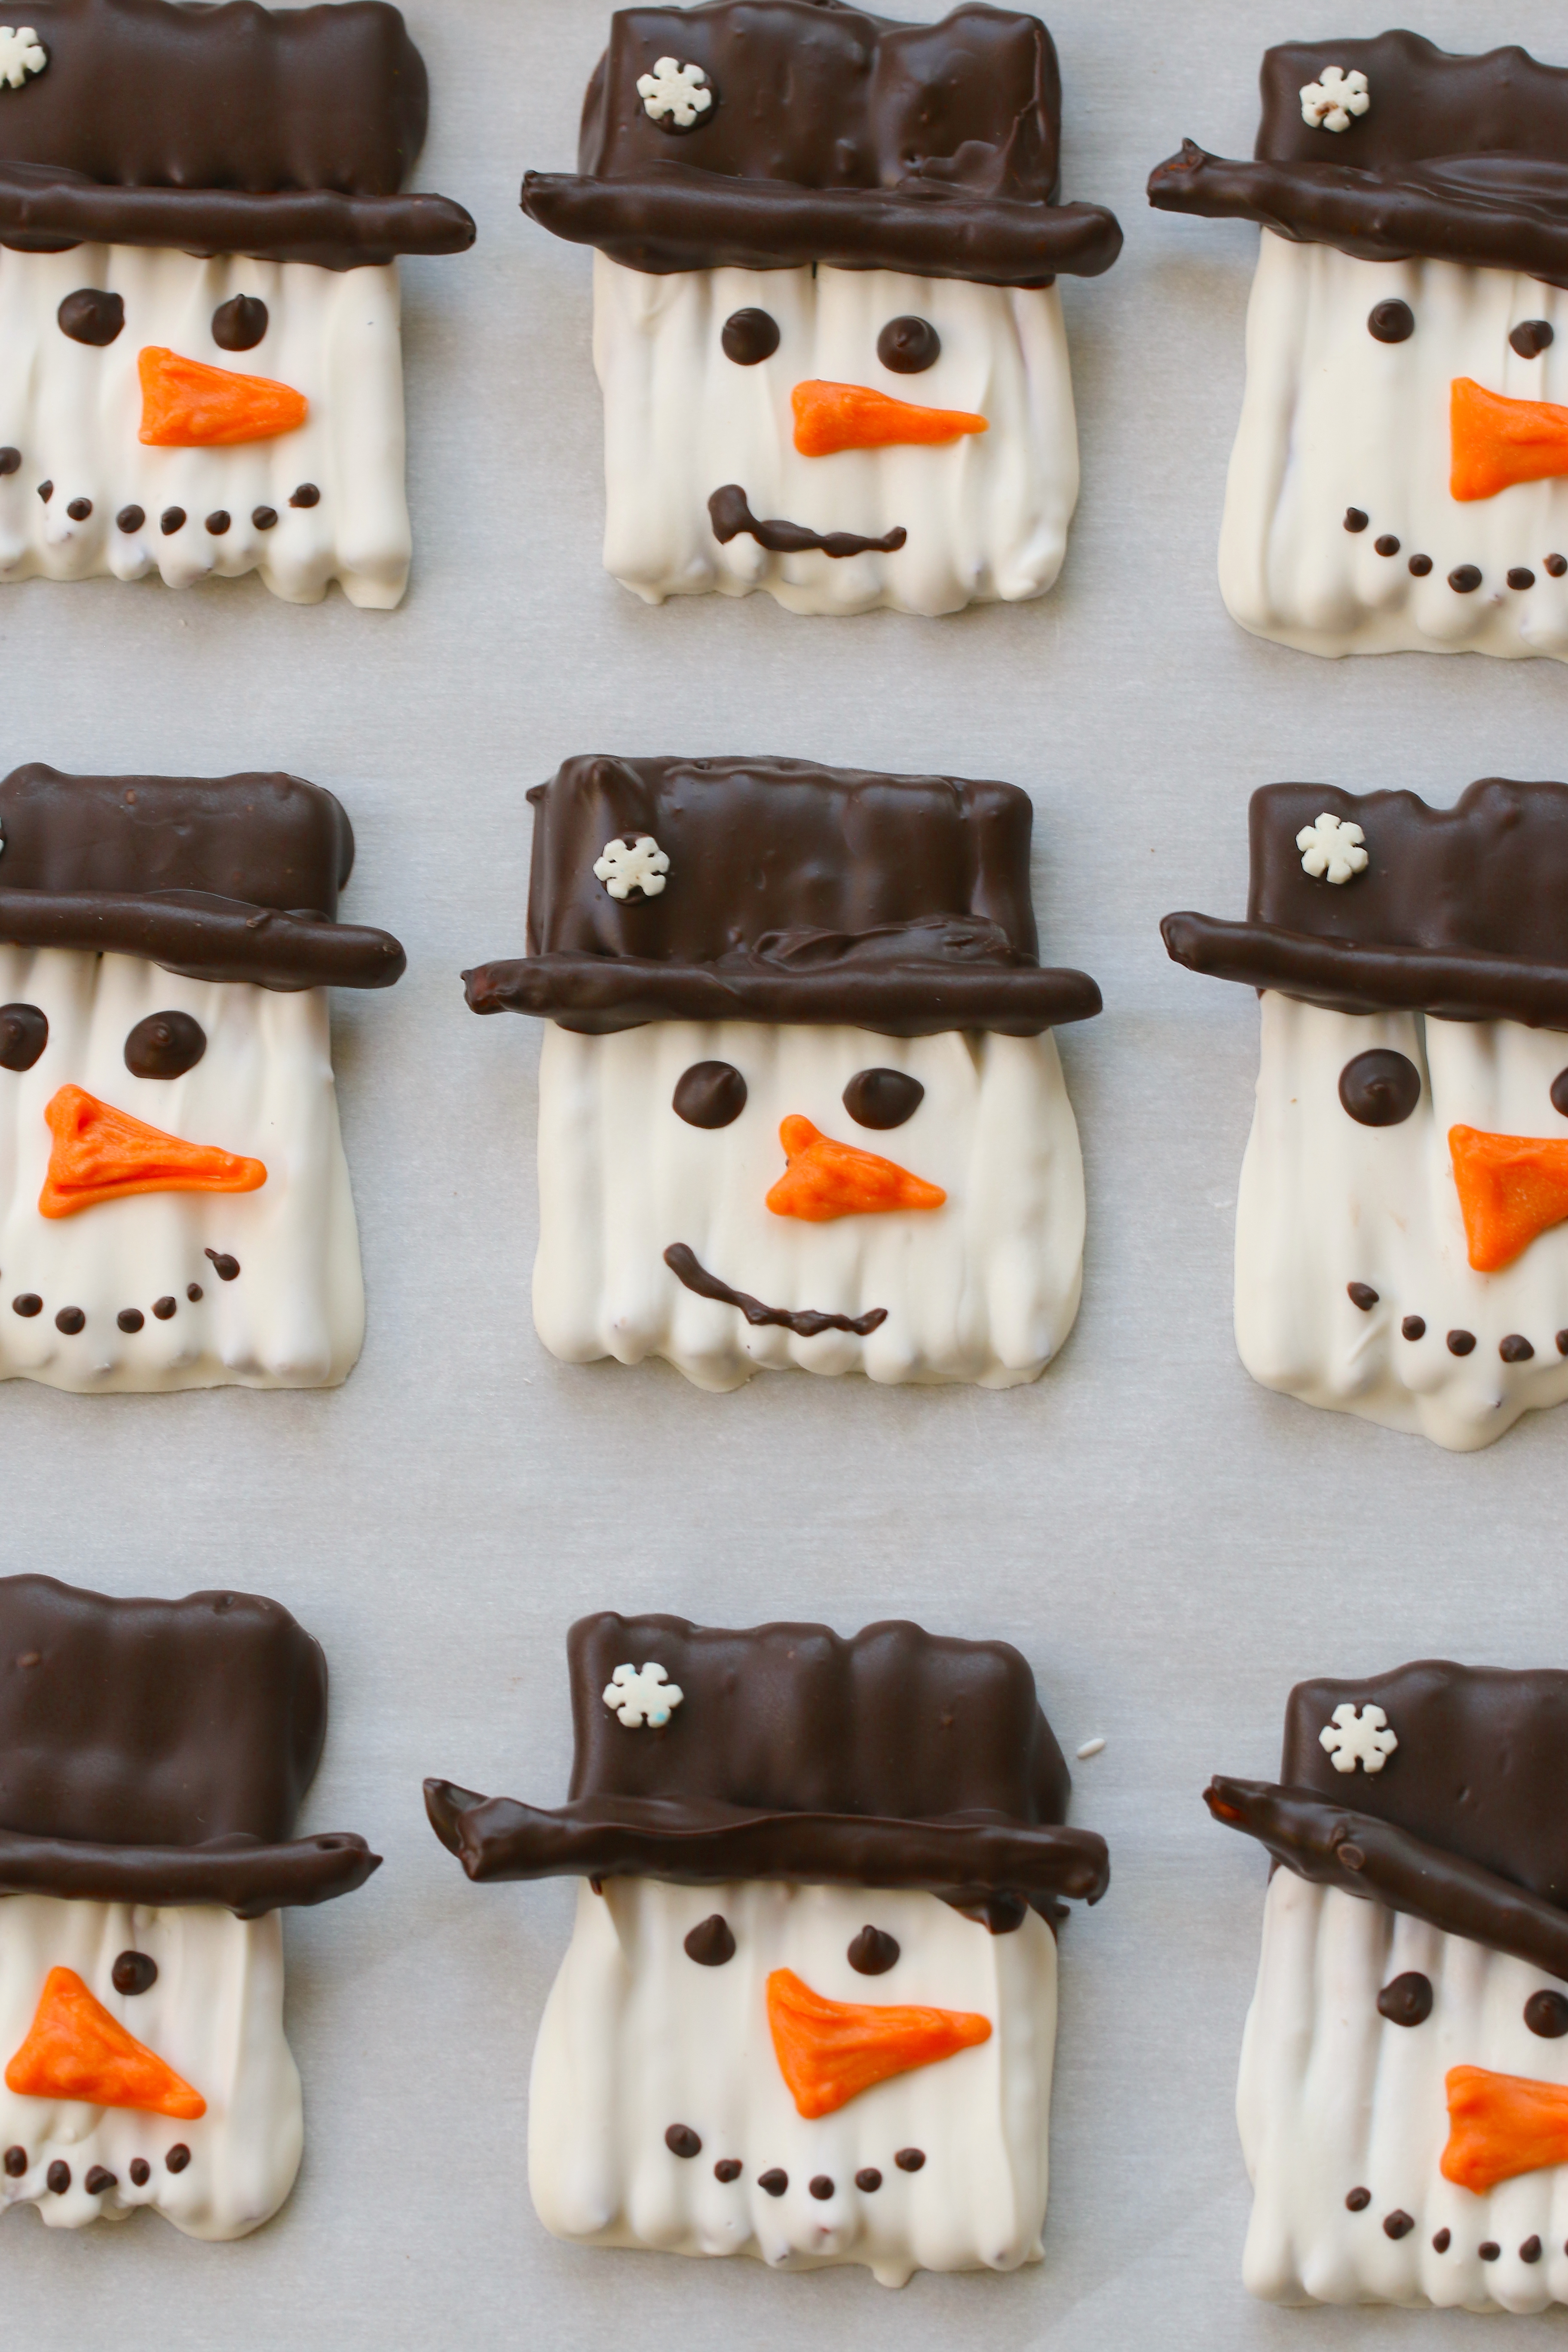 Snowman Cookies Recipe Pretzel Sticks Covered With